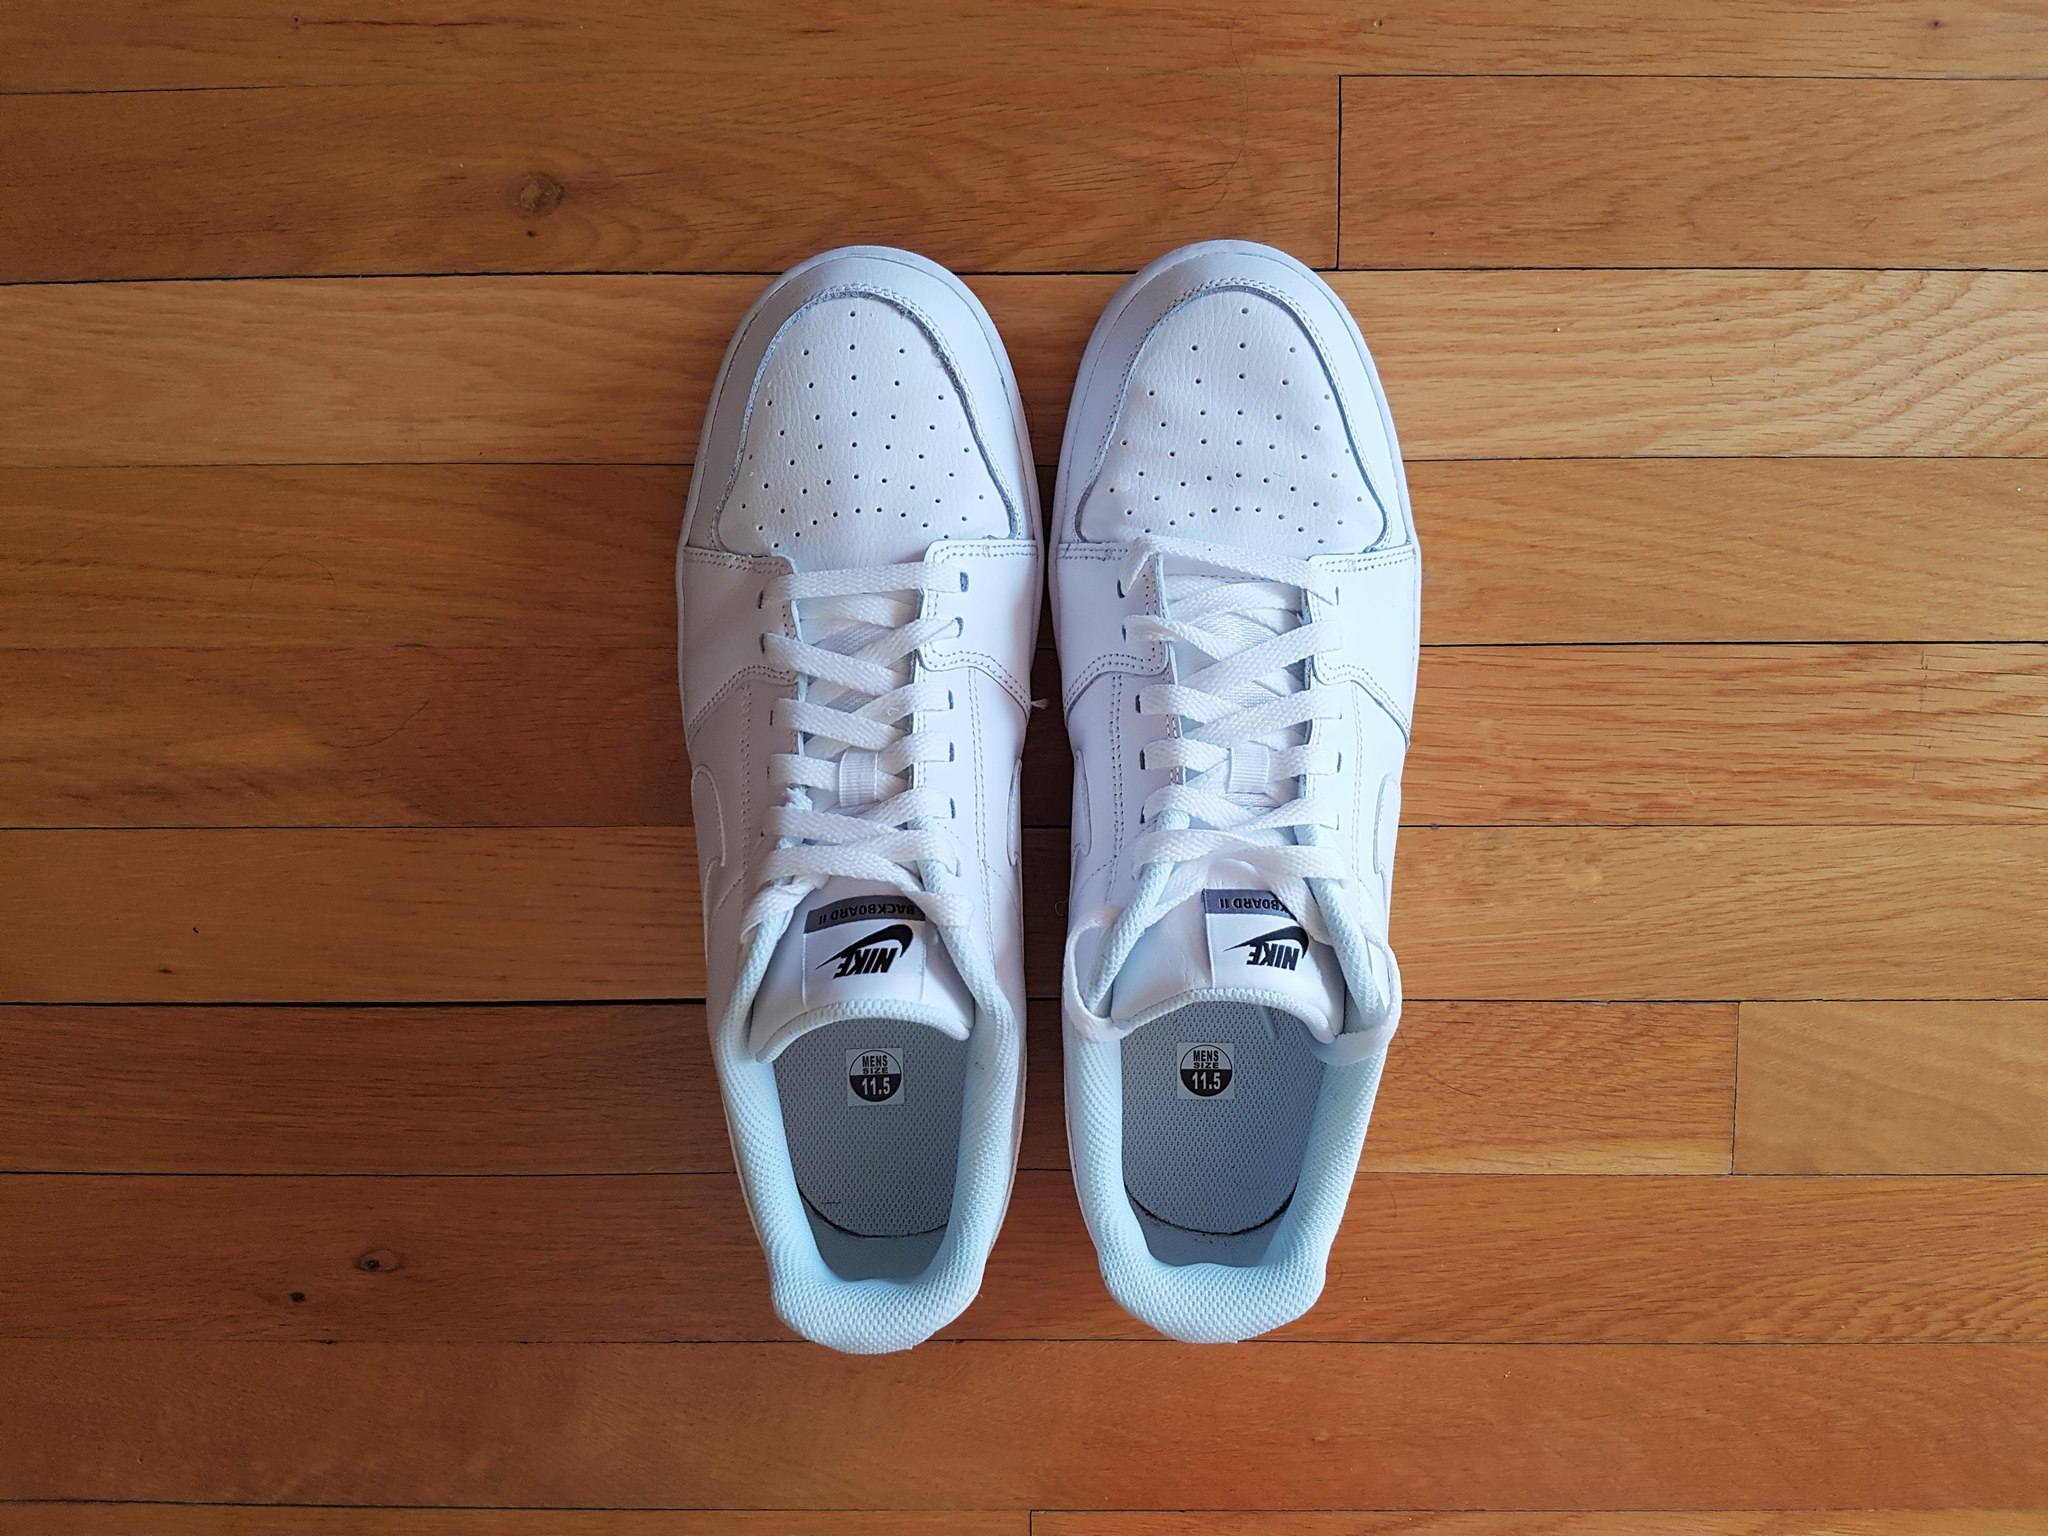 Nike Backboard II White Sneakers for Men (1)